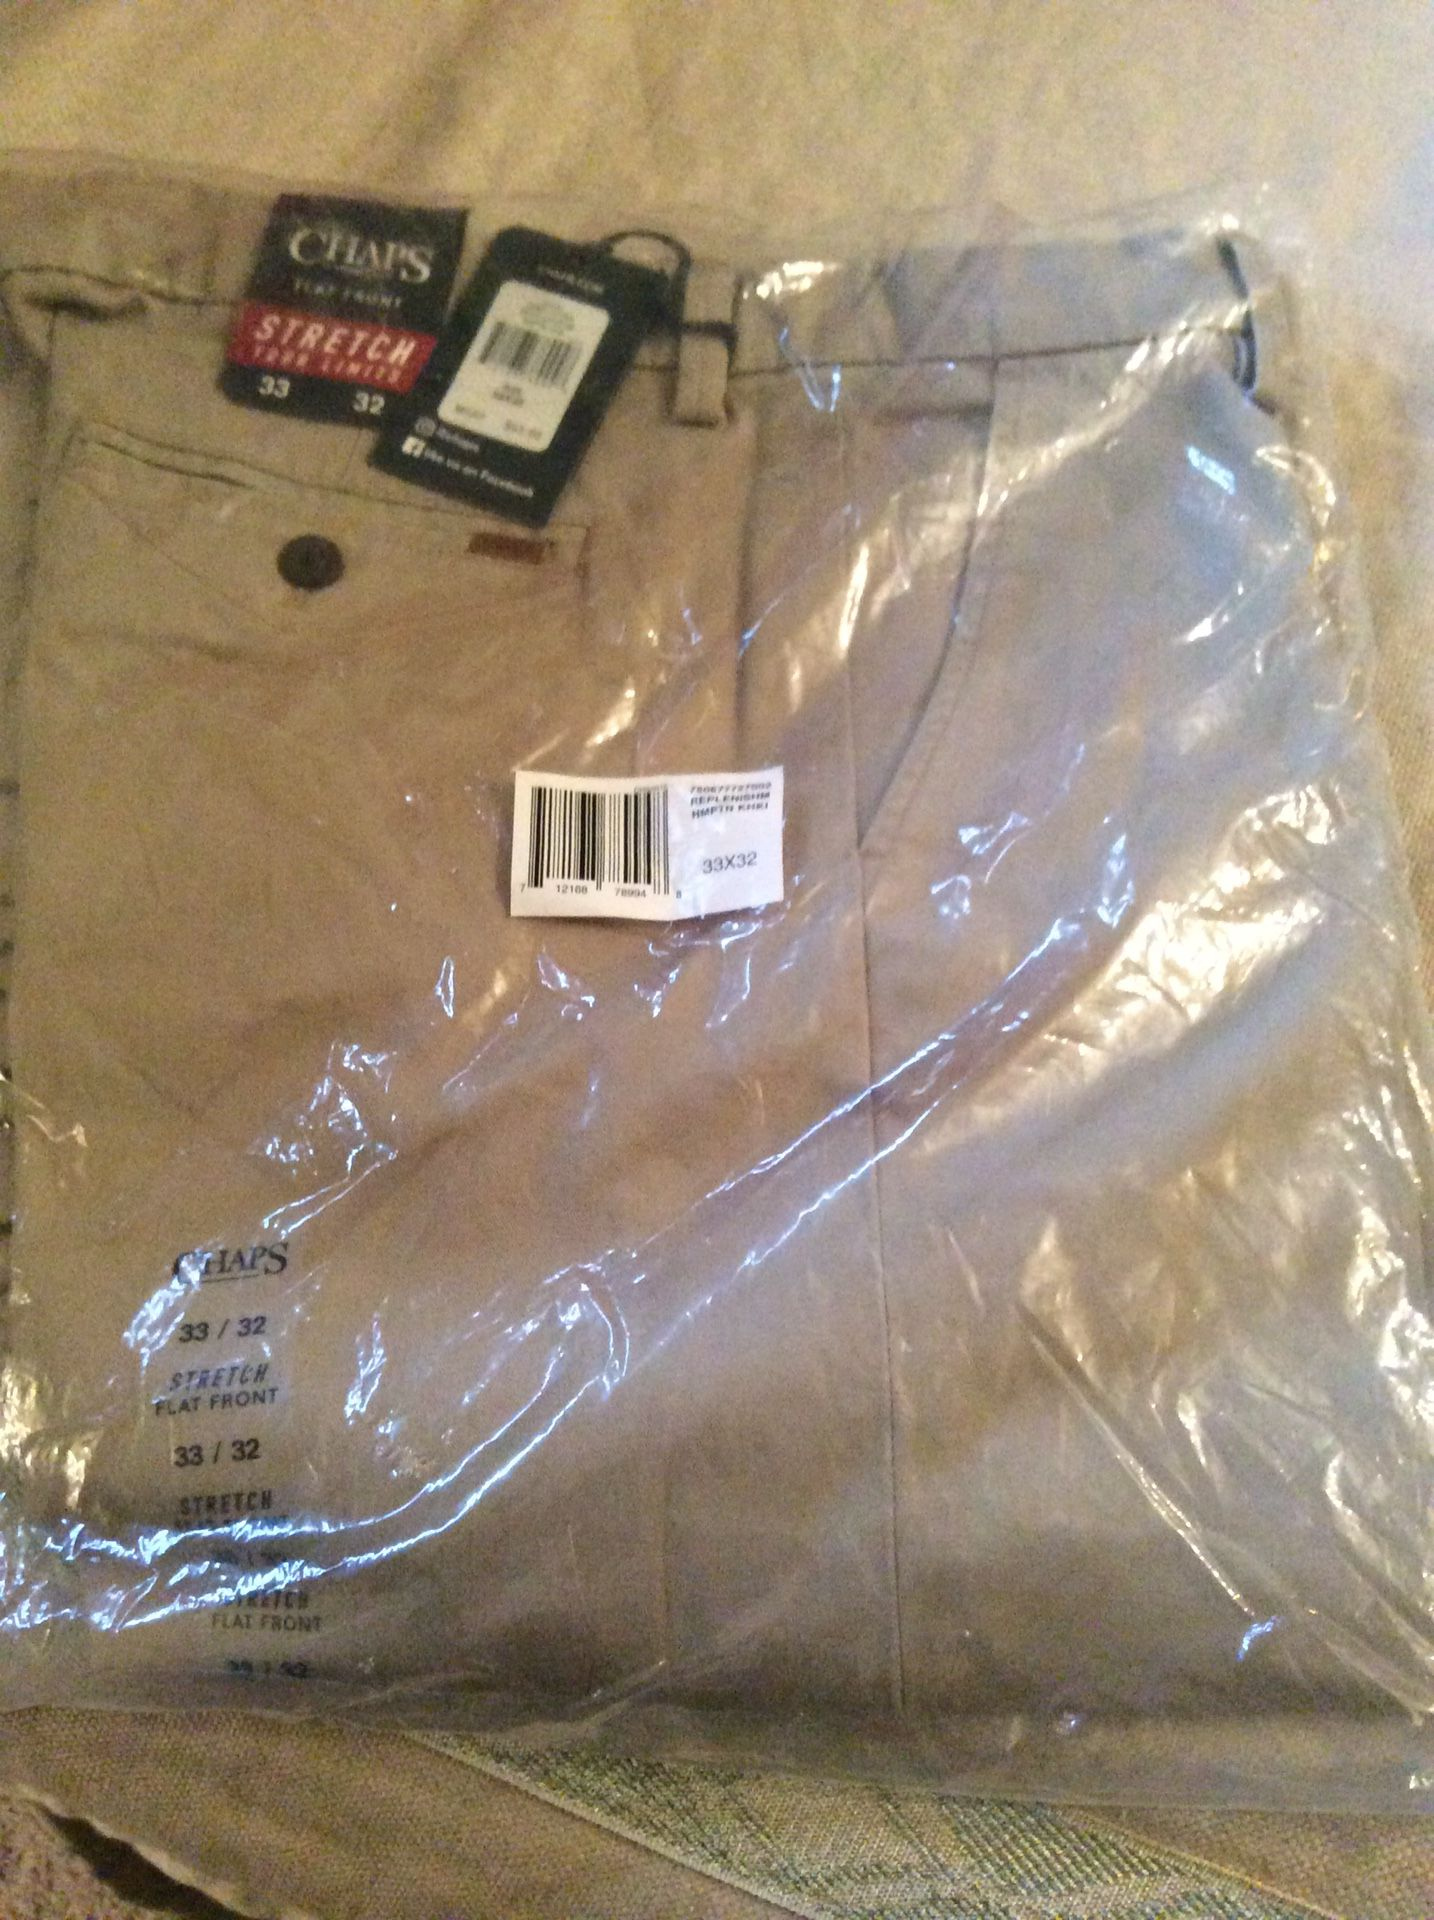 Brand new unopened Chaps flat front pants